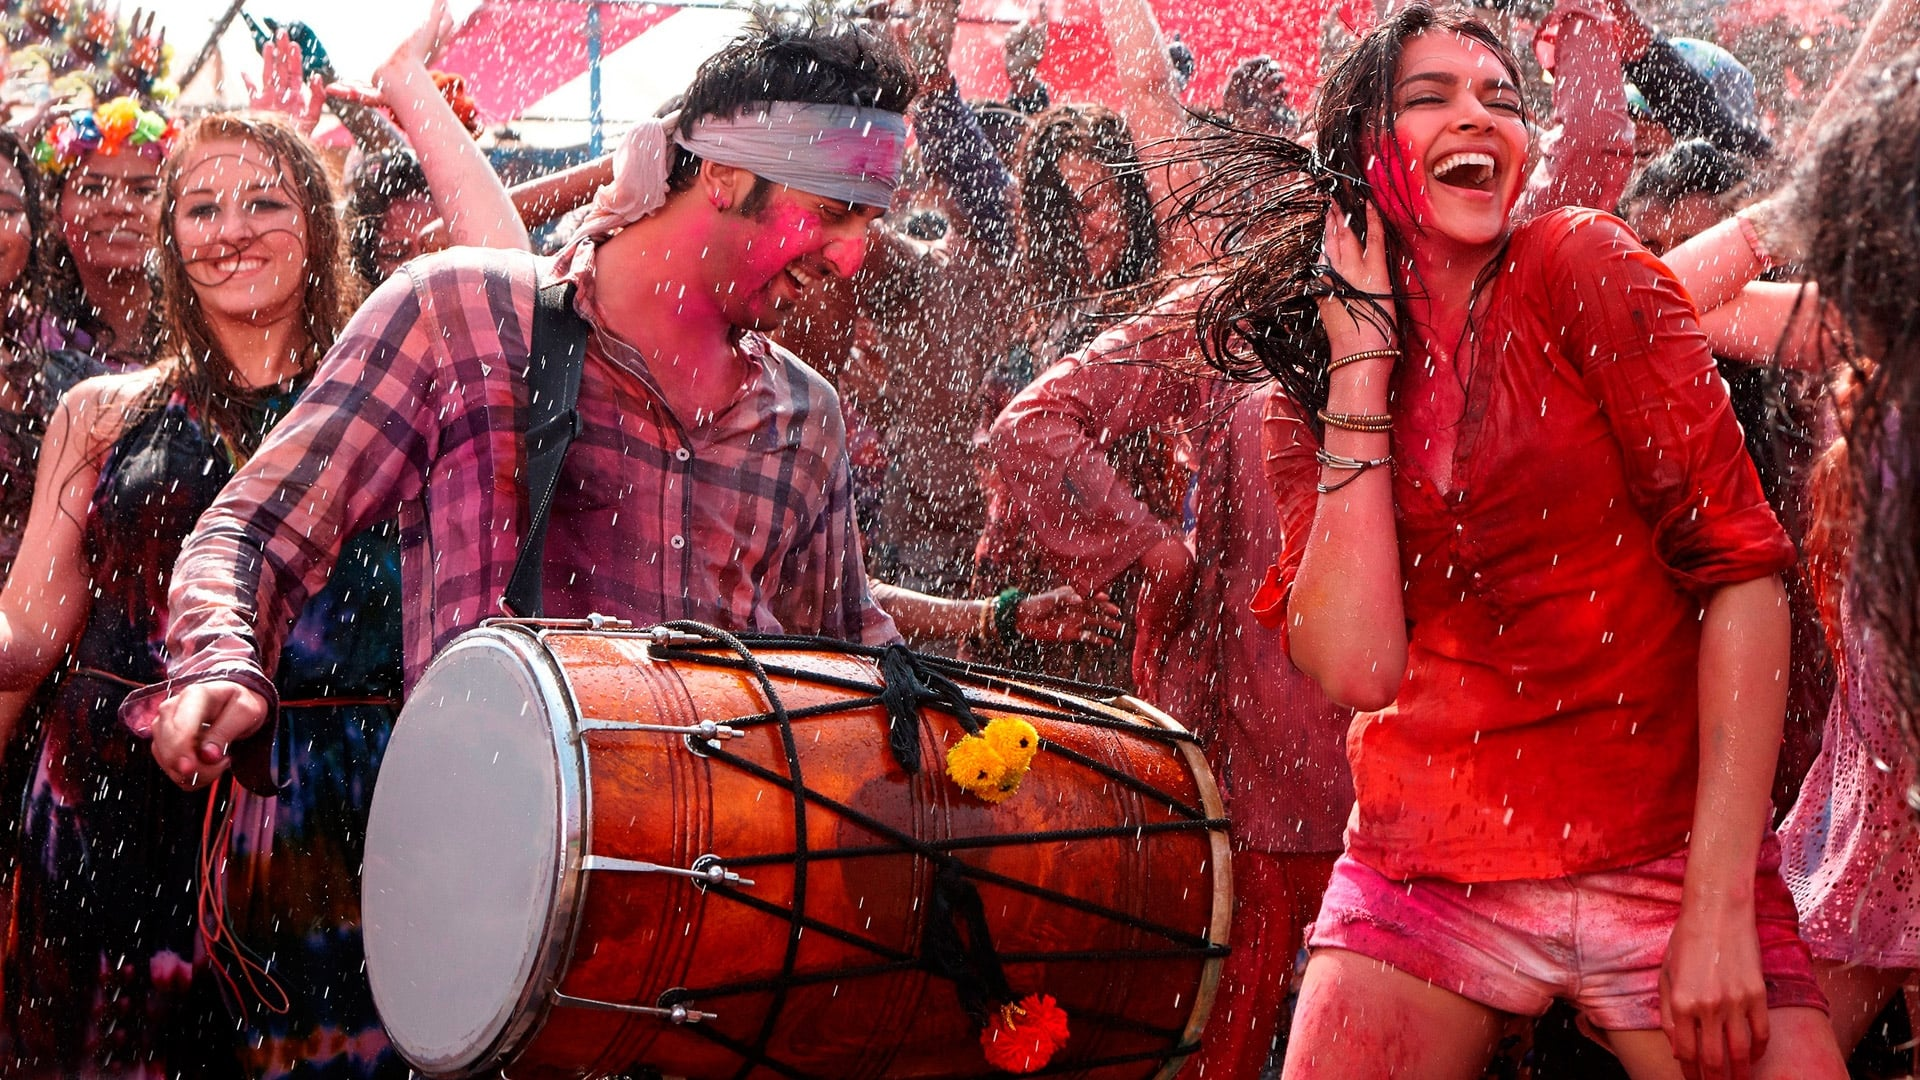 yeh jawaani hai deewani watch online full movie, putlocker, fmovies